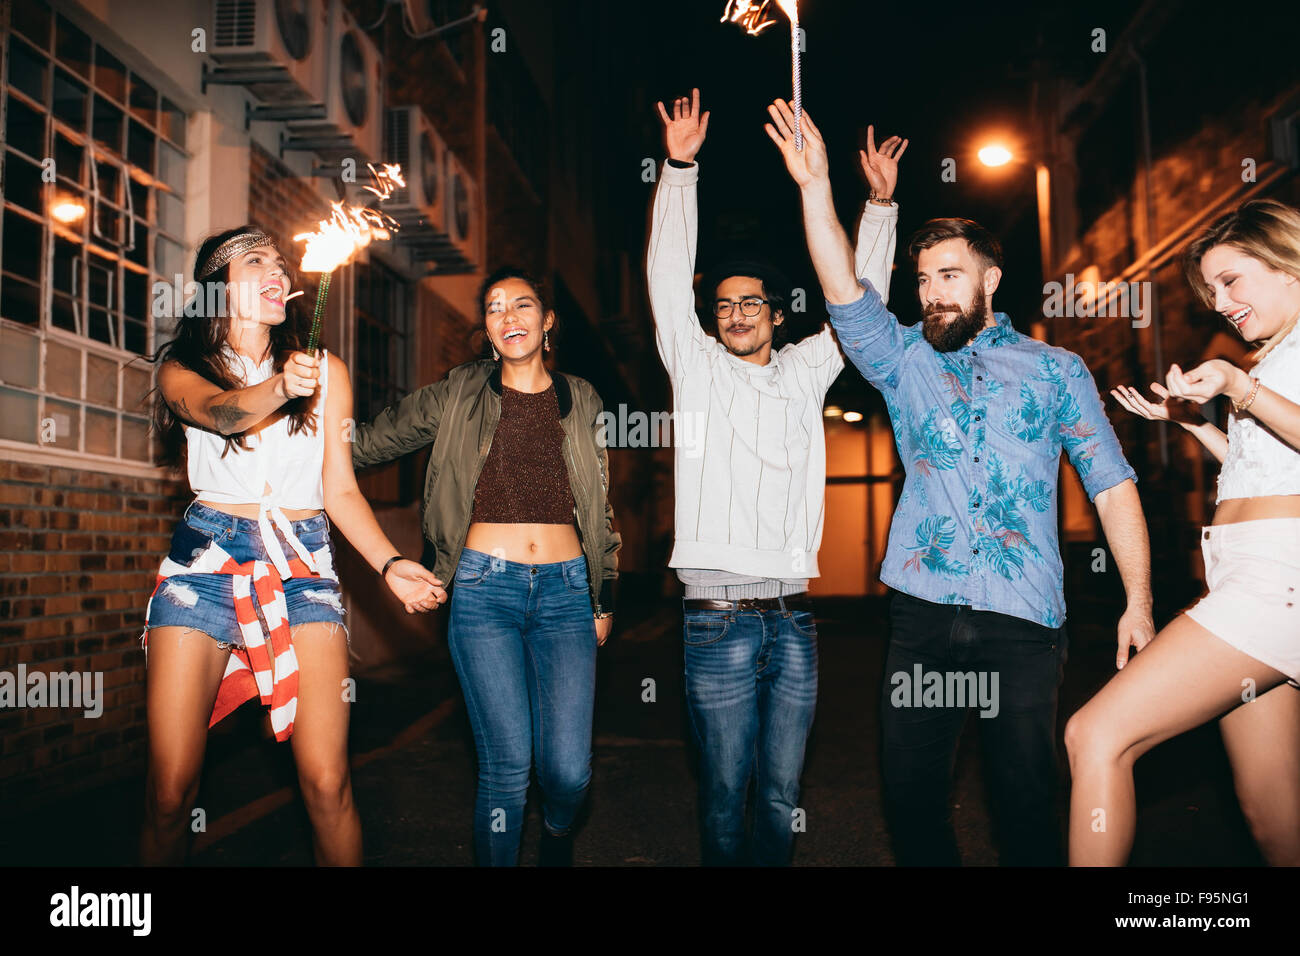 Portrait of happy young friends celebrating new years eve with sparklers at night. Best friends hanging out at night - Stock Image